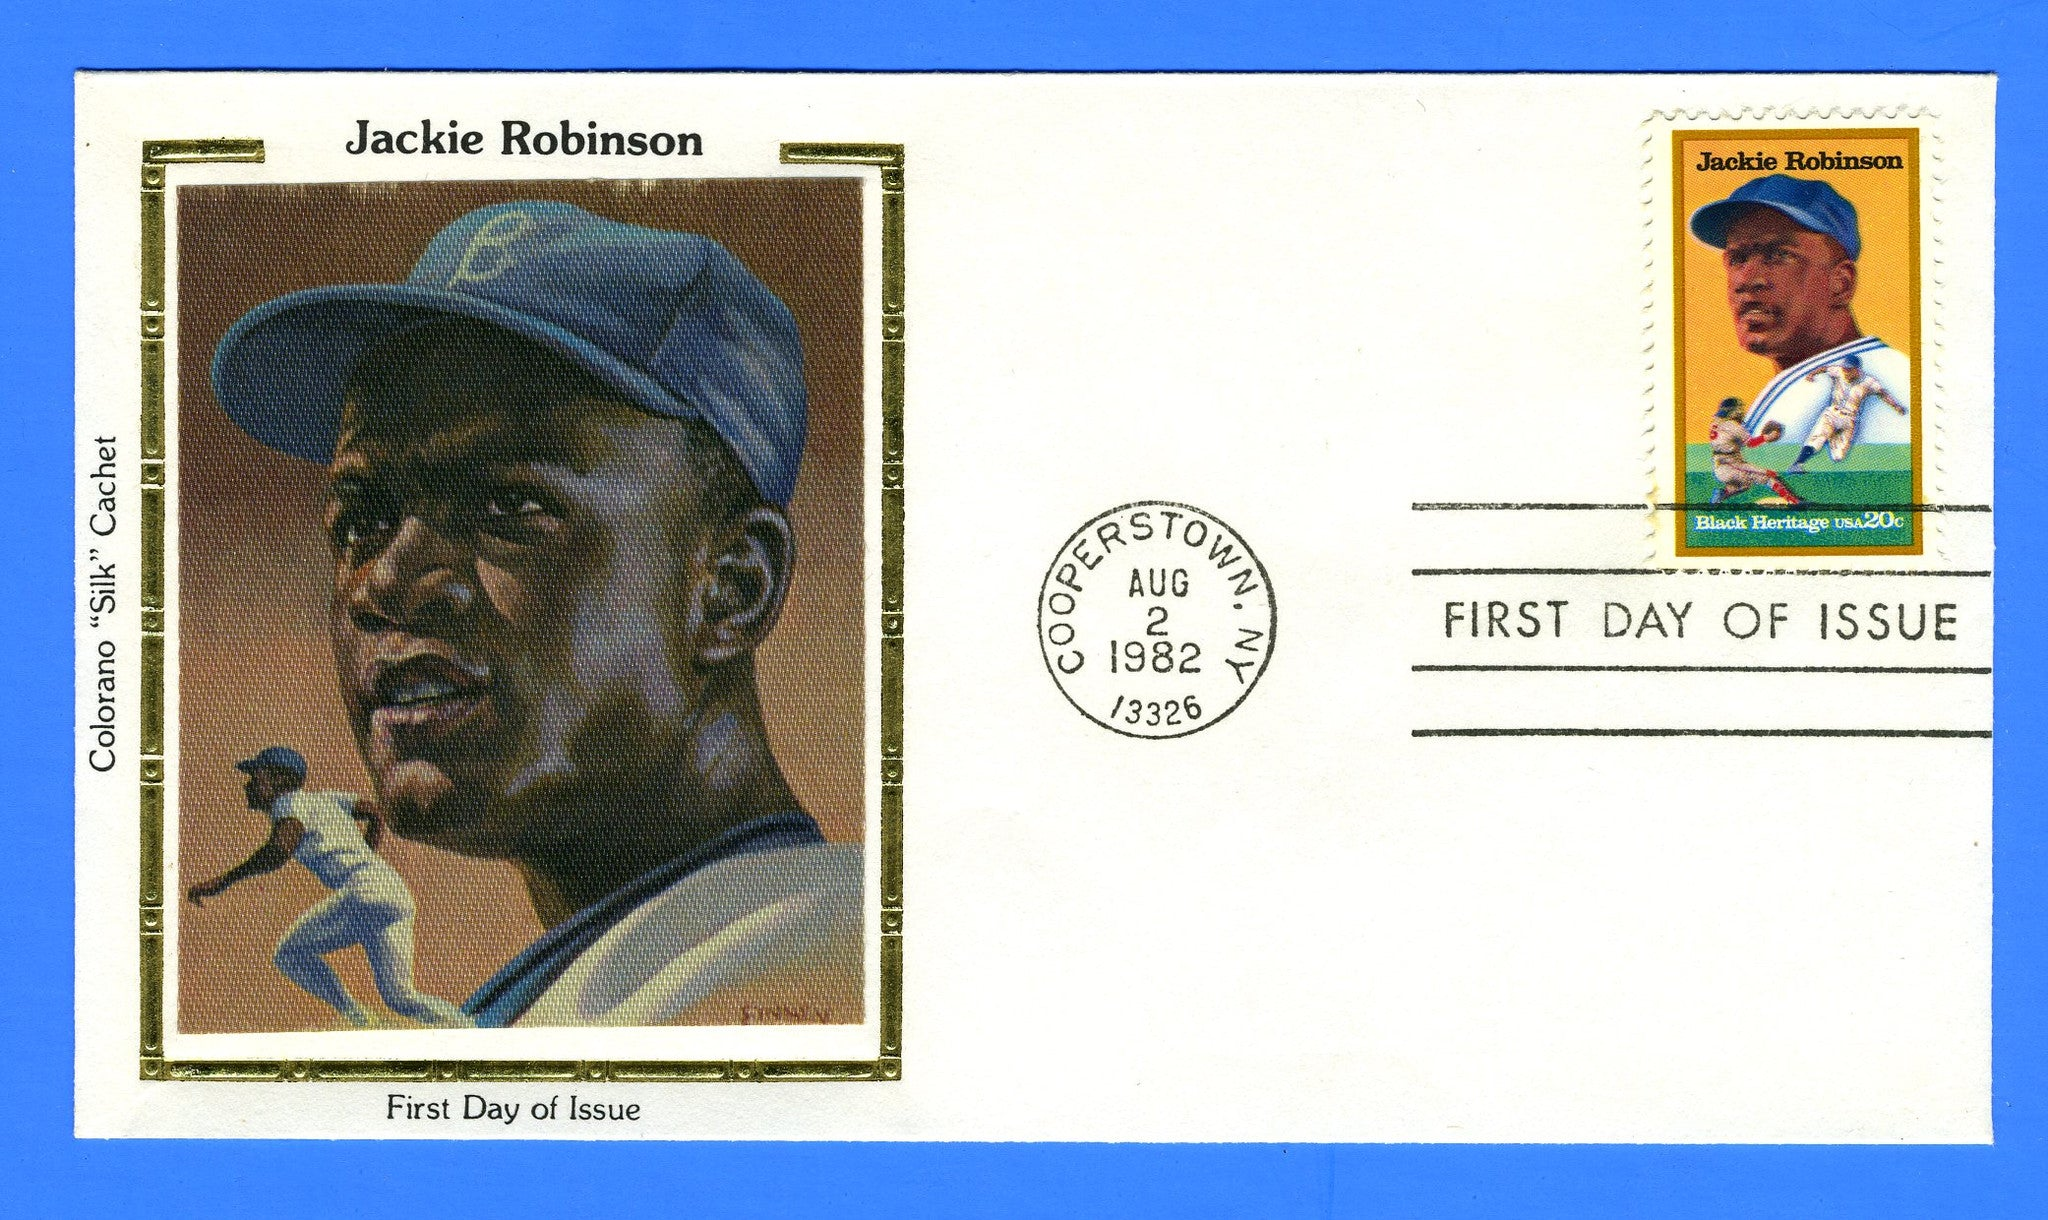 Scott 2016 Jackie Robinson First Day Cover by Colorano